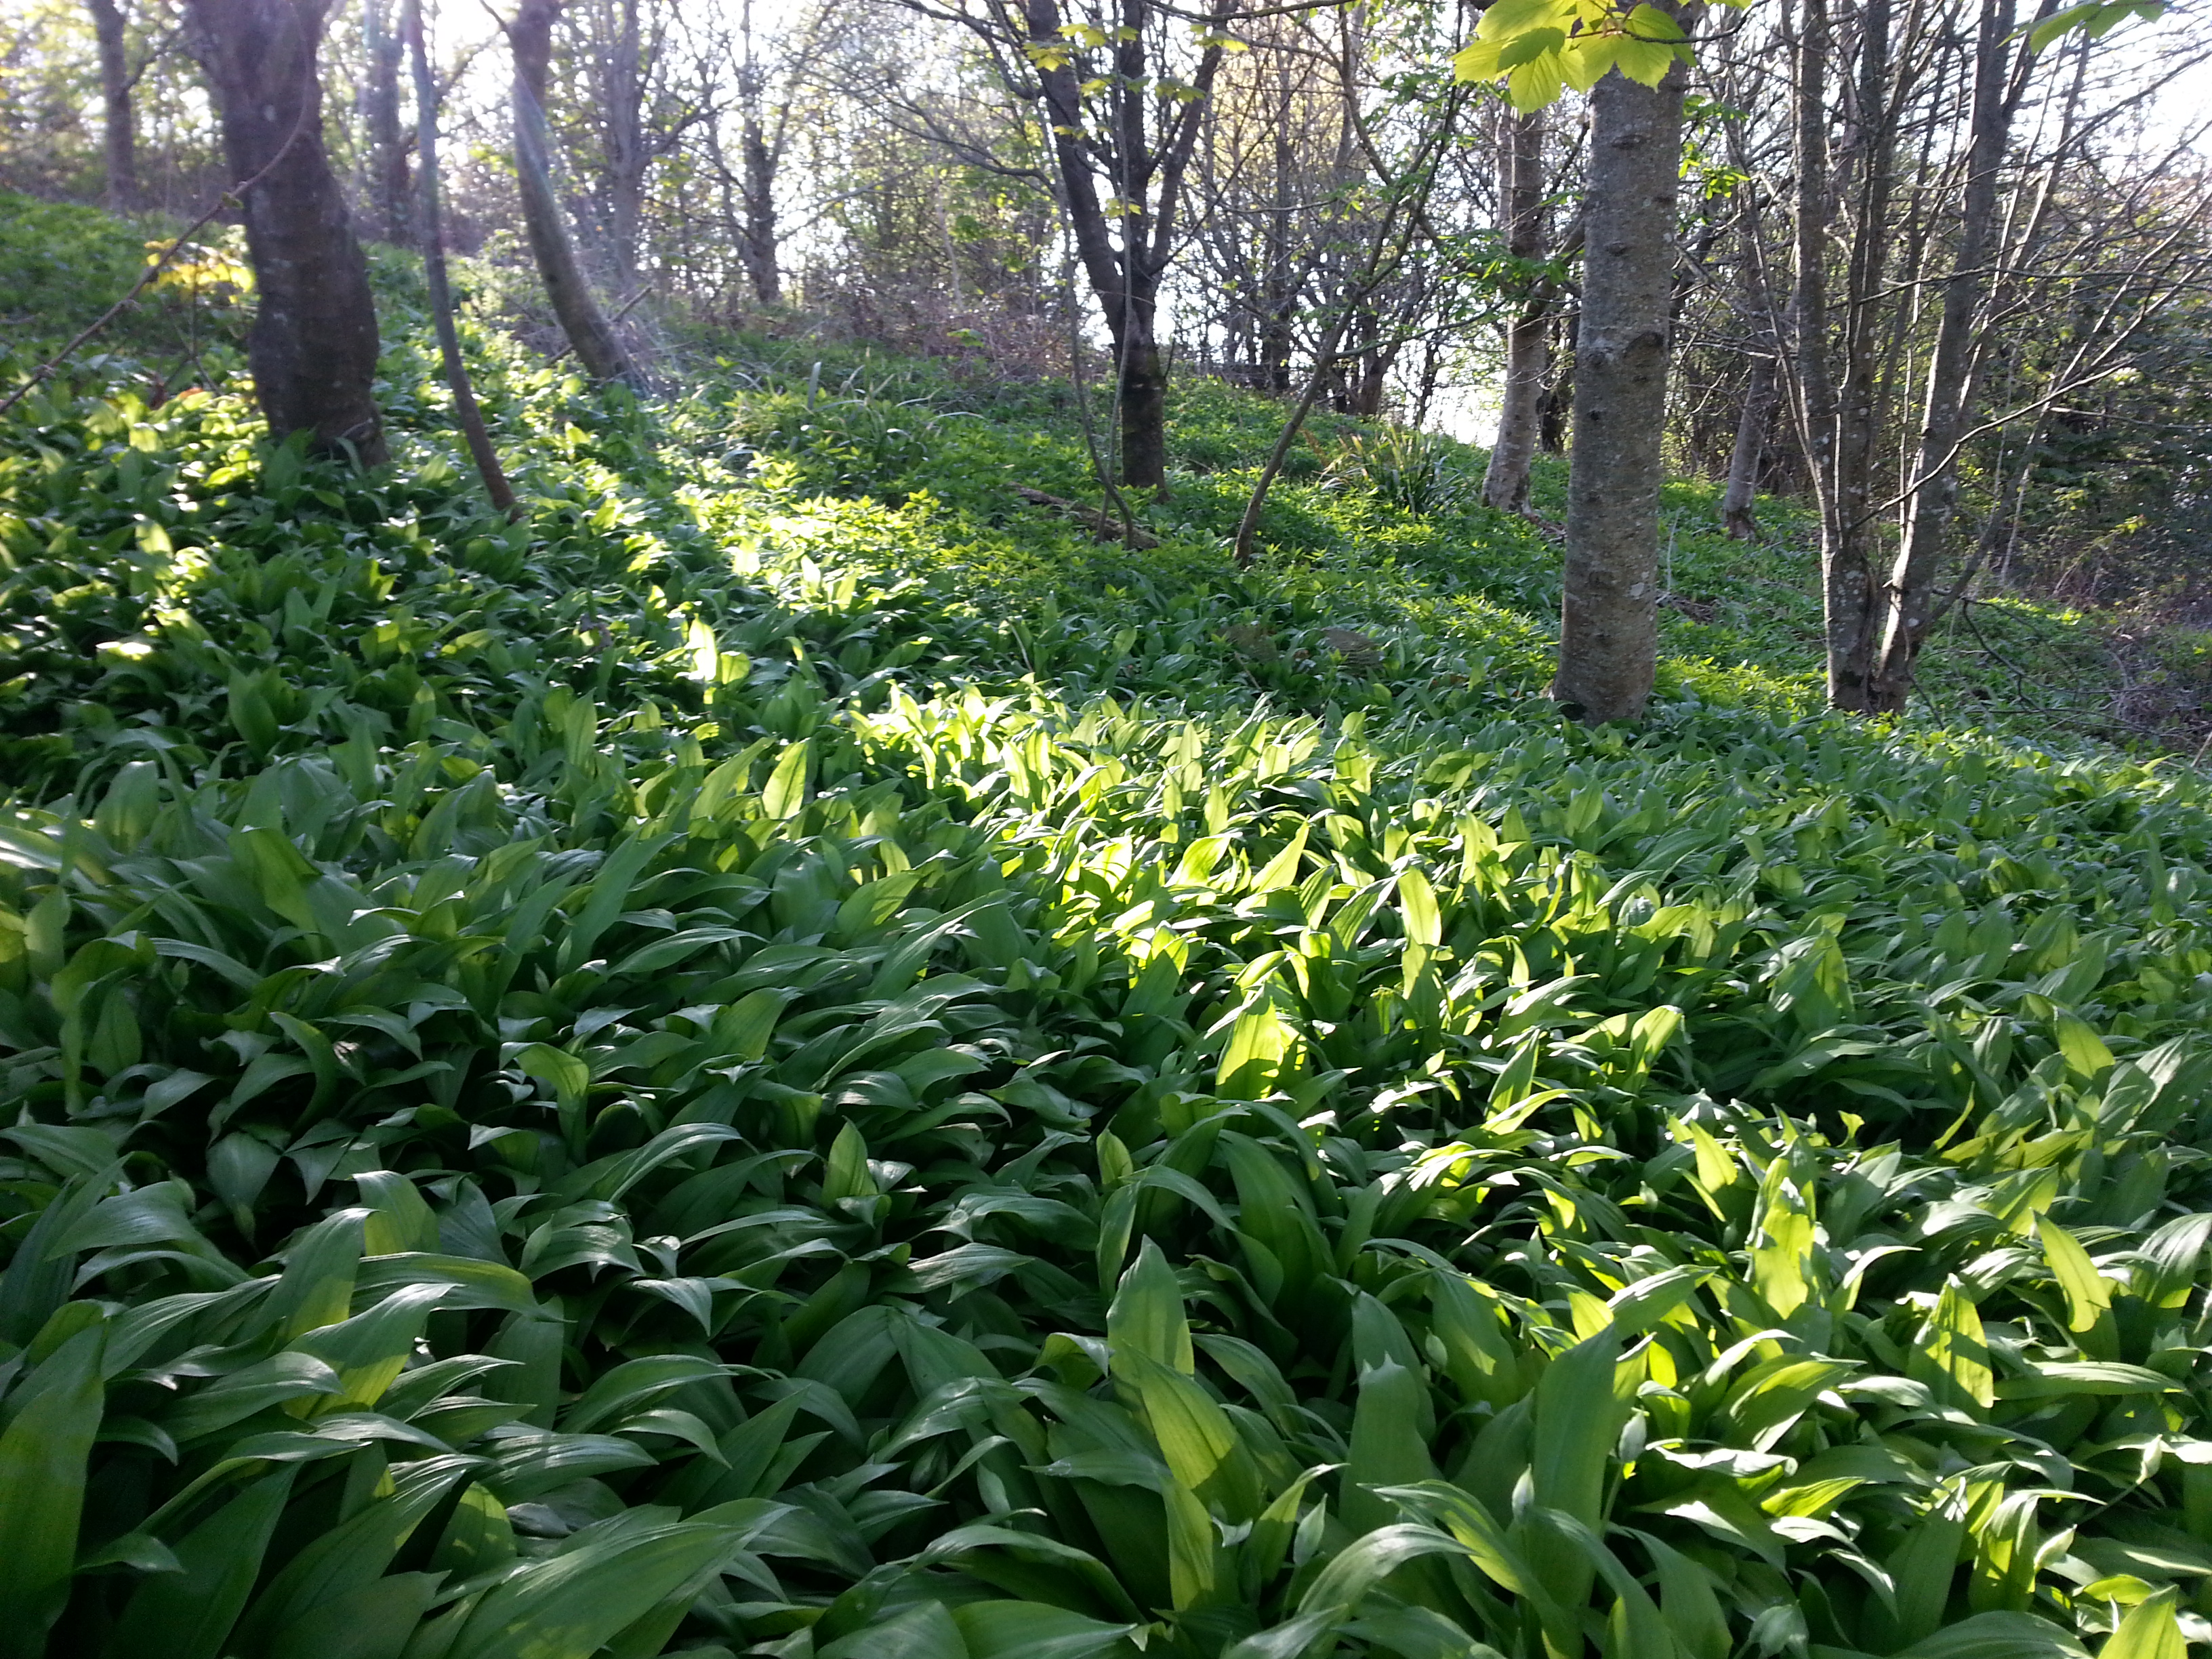 Local wild garlic